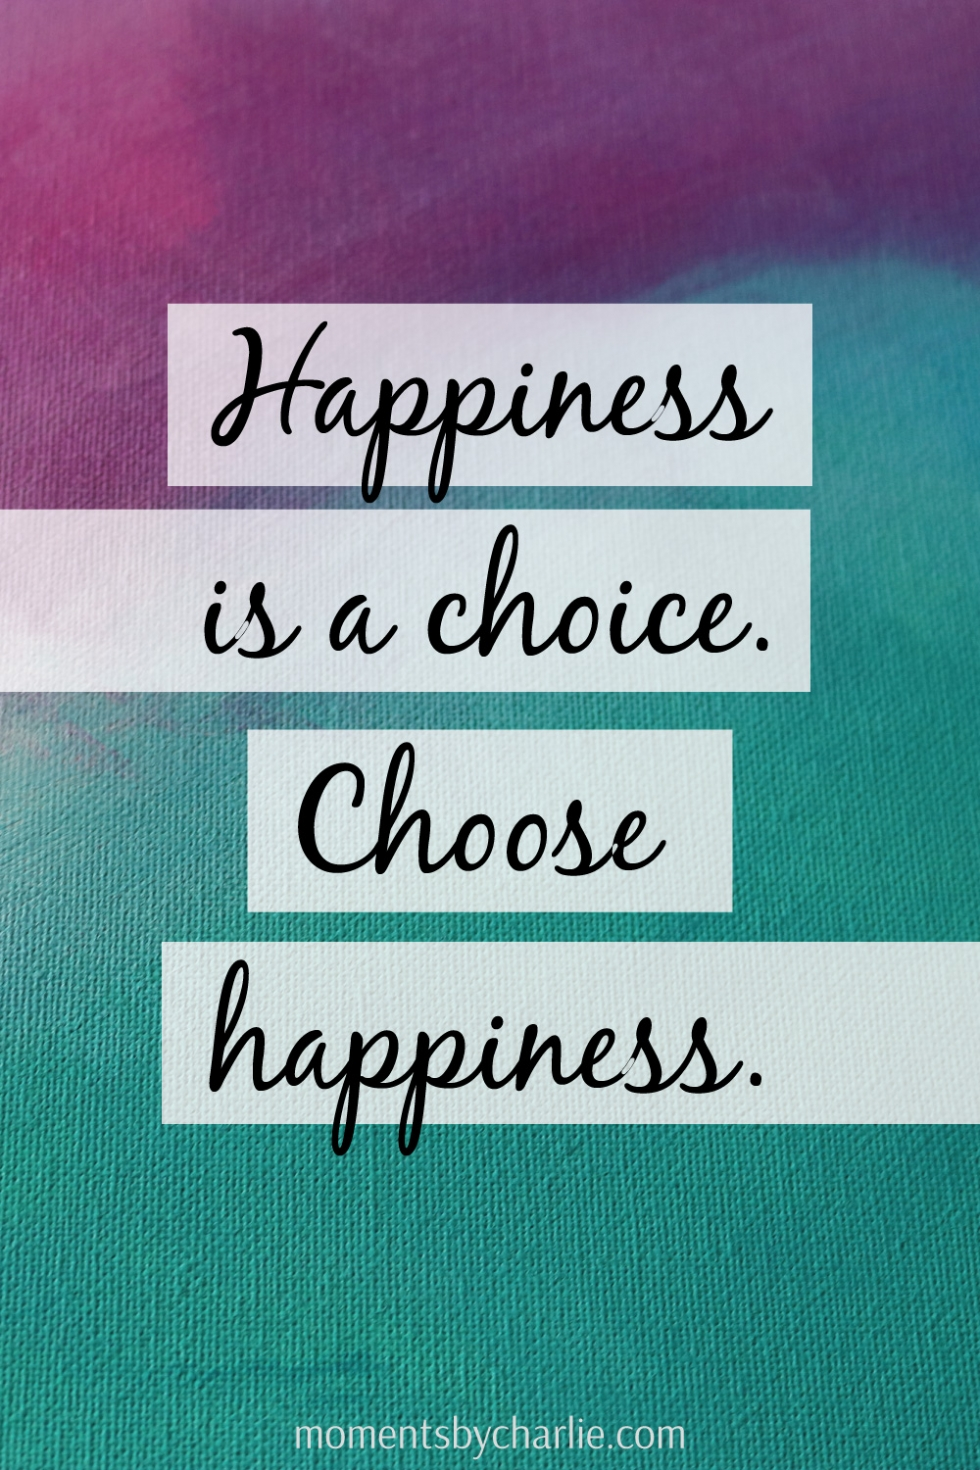 Happiness Is A Choice, Choose Happiness | Moments by Charlie Albright | Creative Lifestyle Blog | Art + Fashion + Lifestyle